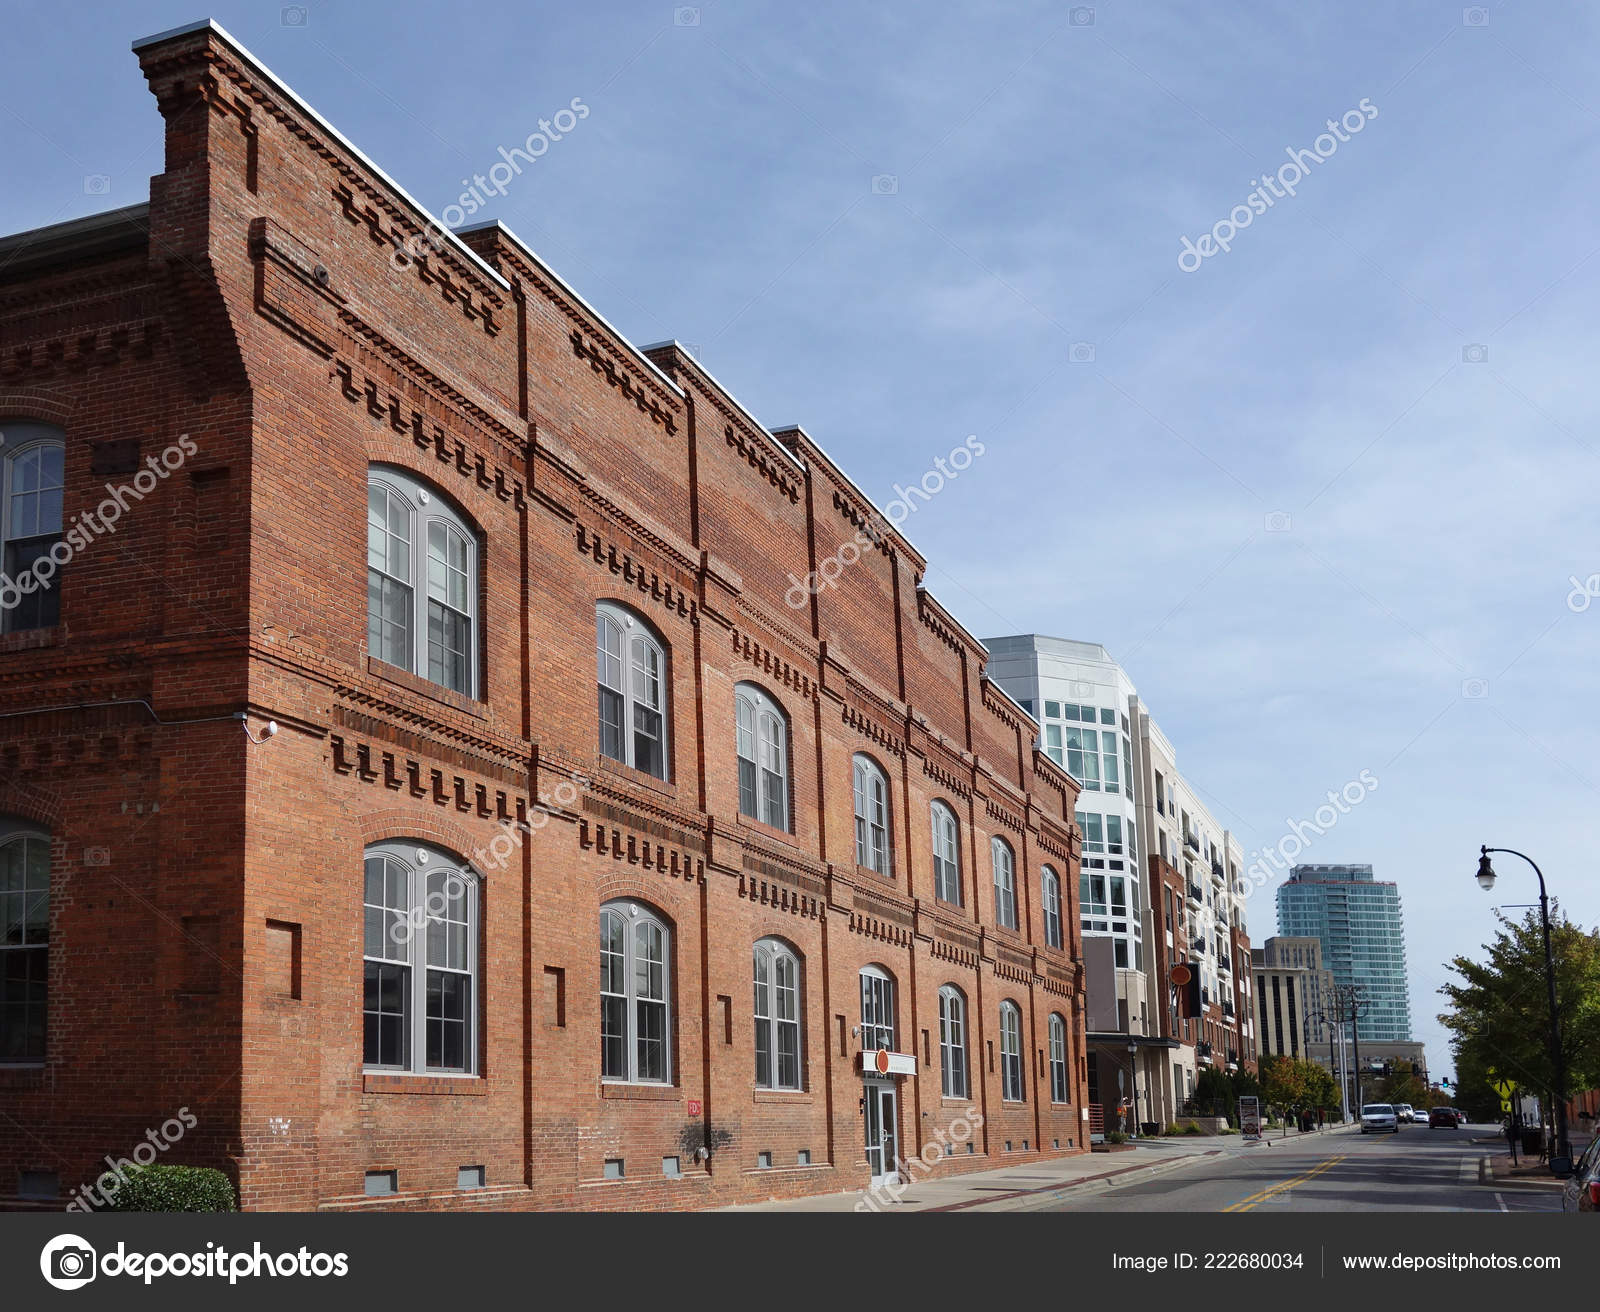 View Downtown Durham Showing Former Tobacco Warehouse Converted Loft